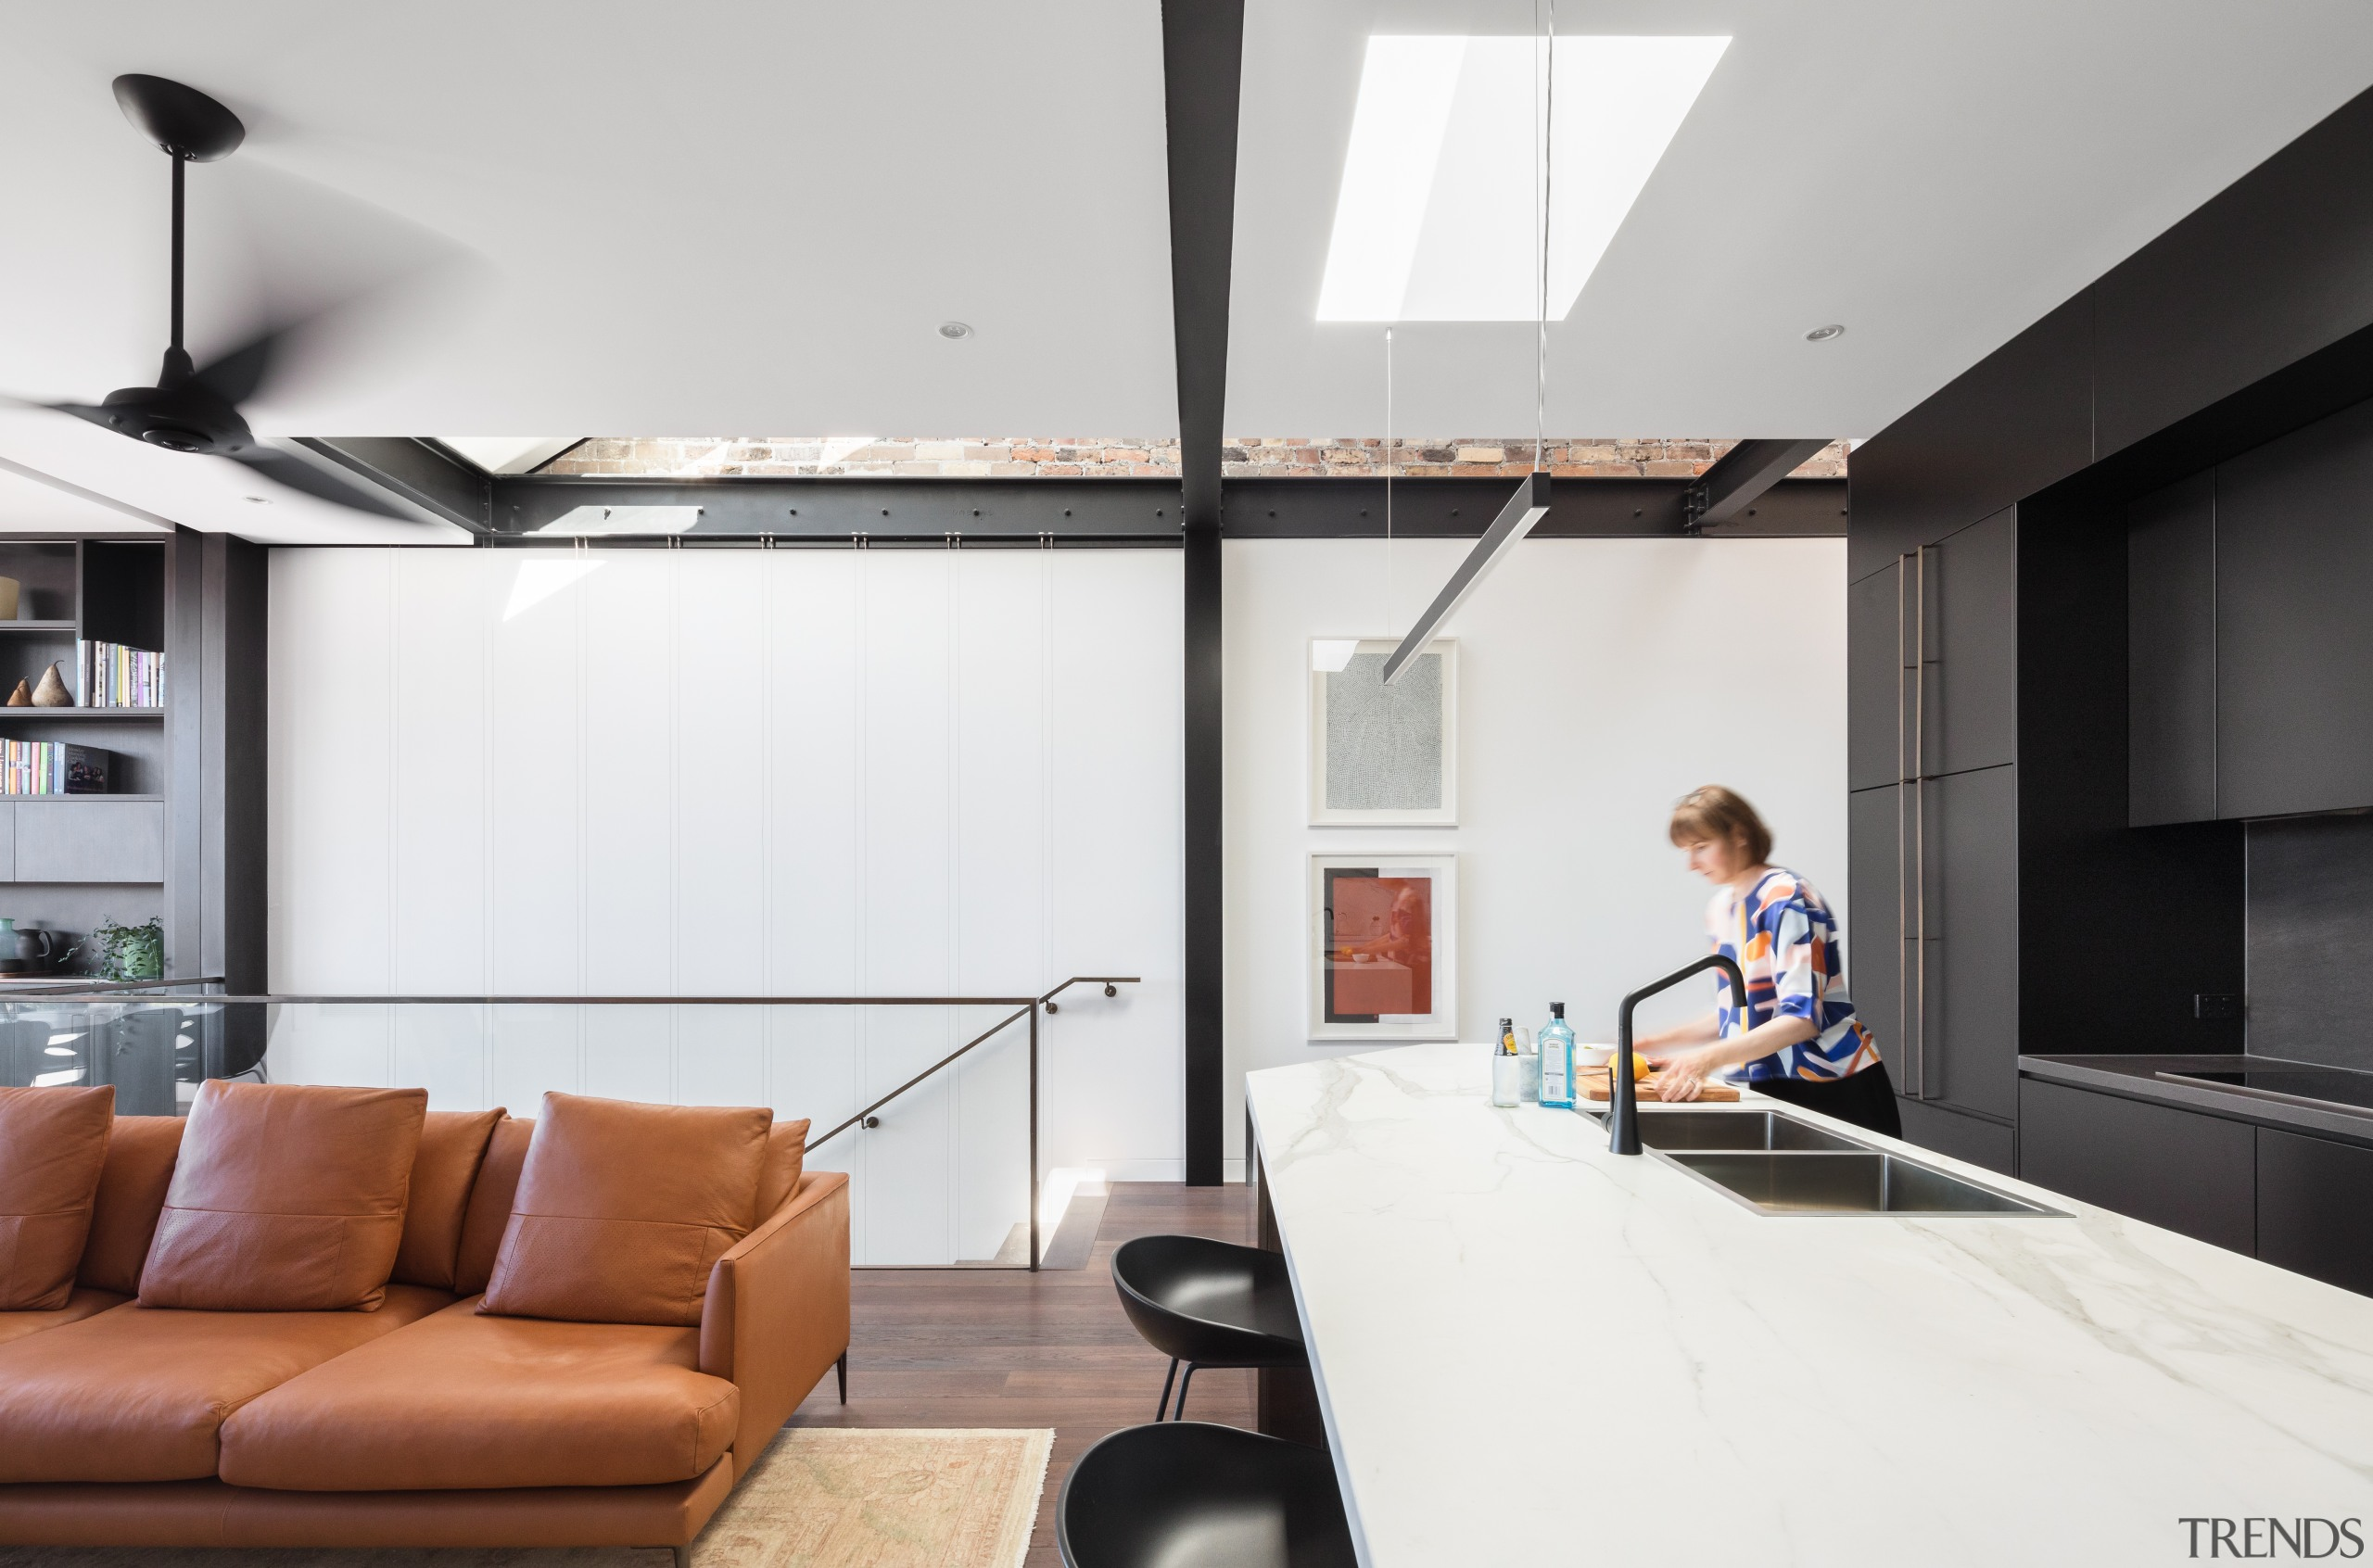 Nz3406Bijl–286981396 06 - architecture | ceiling | daylighting architecture, ceiling, daylighting, furniture, house, interior design, living room, loft, white